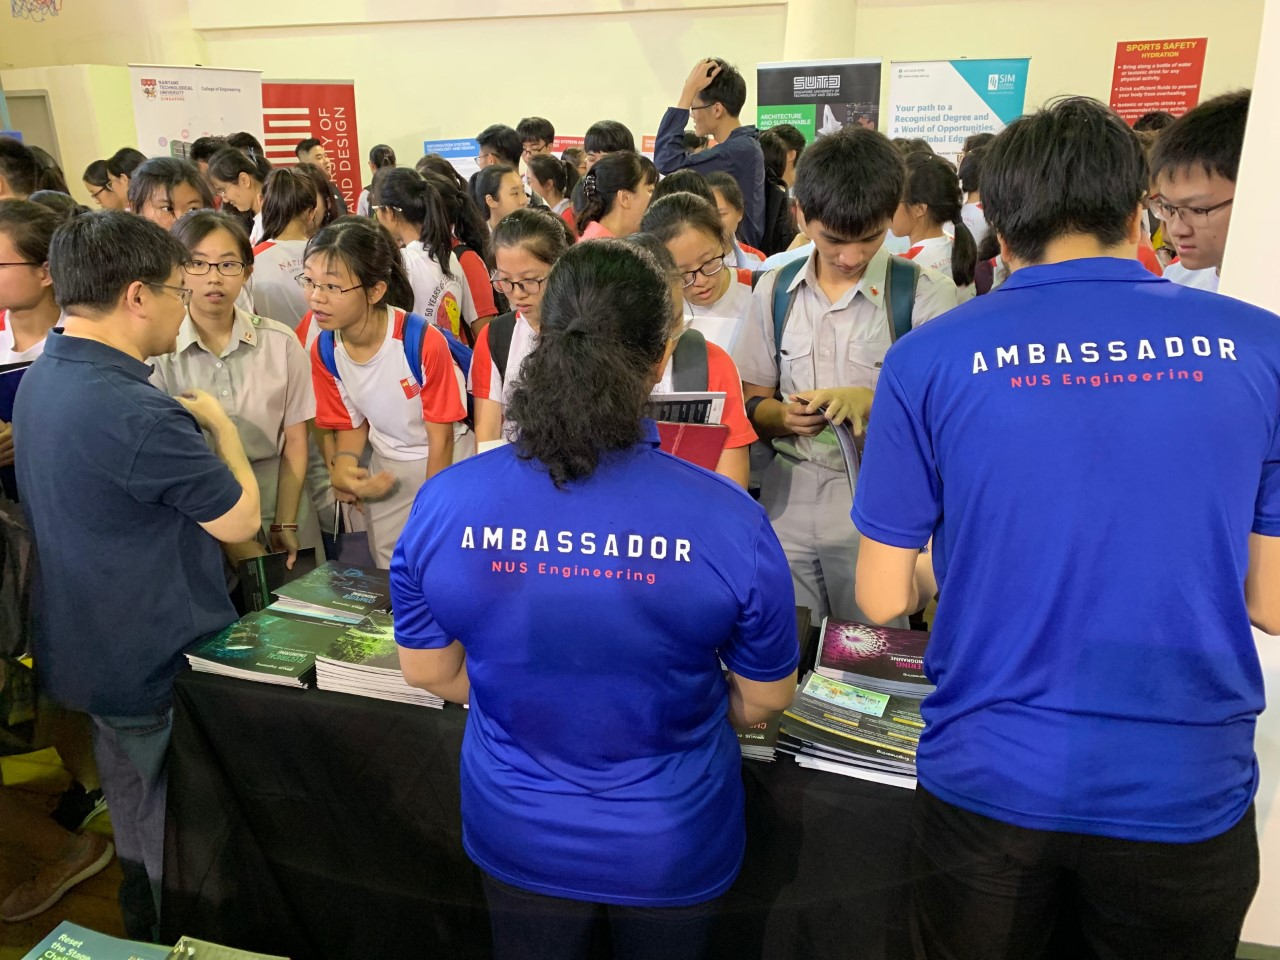 Njc Career Fair 2019